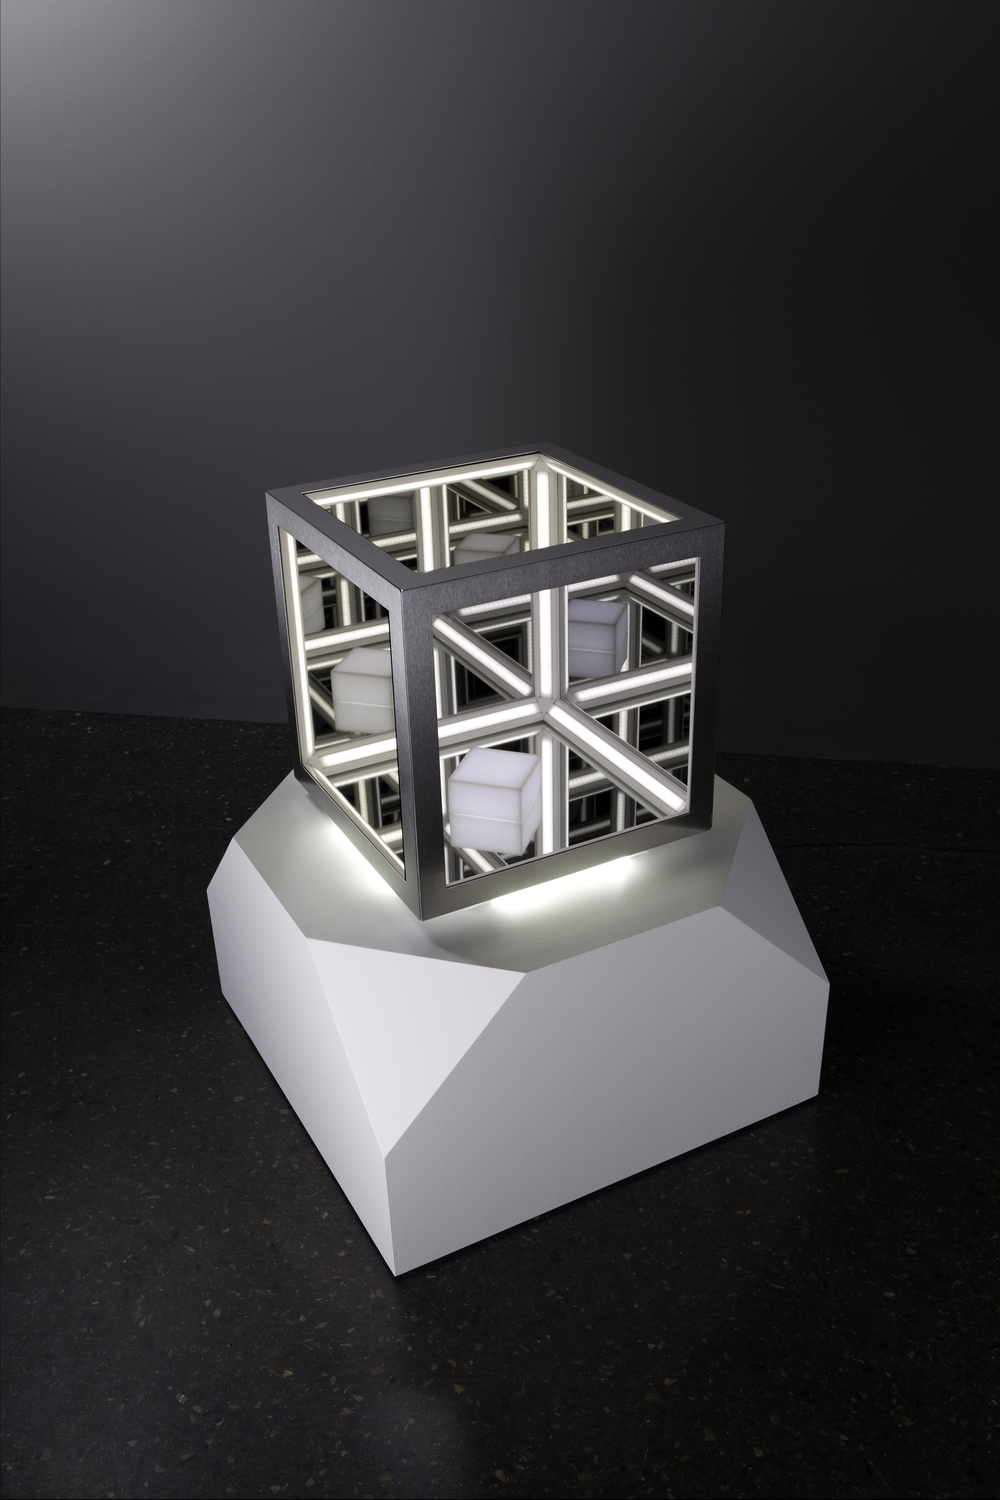 Cubed , wood, mirror, reflective glass, Perspex, stainless steel, MDF and LED lights, 76 x 60 x 60cm (including plinth). Photo: Pippy Mount.